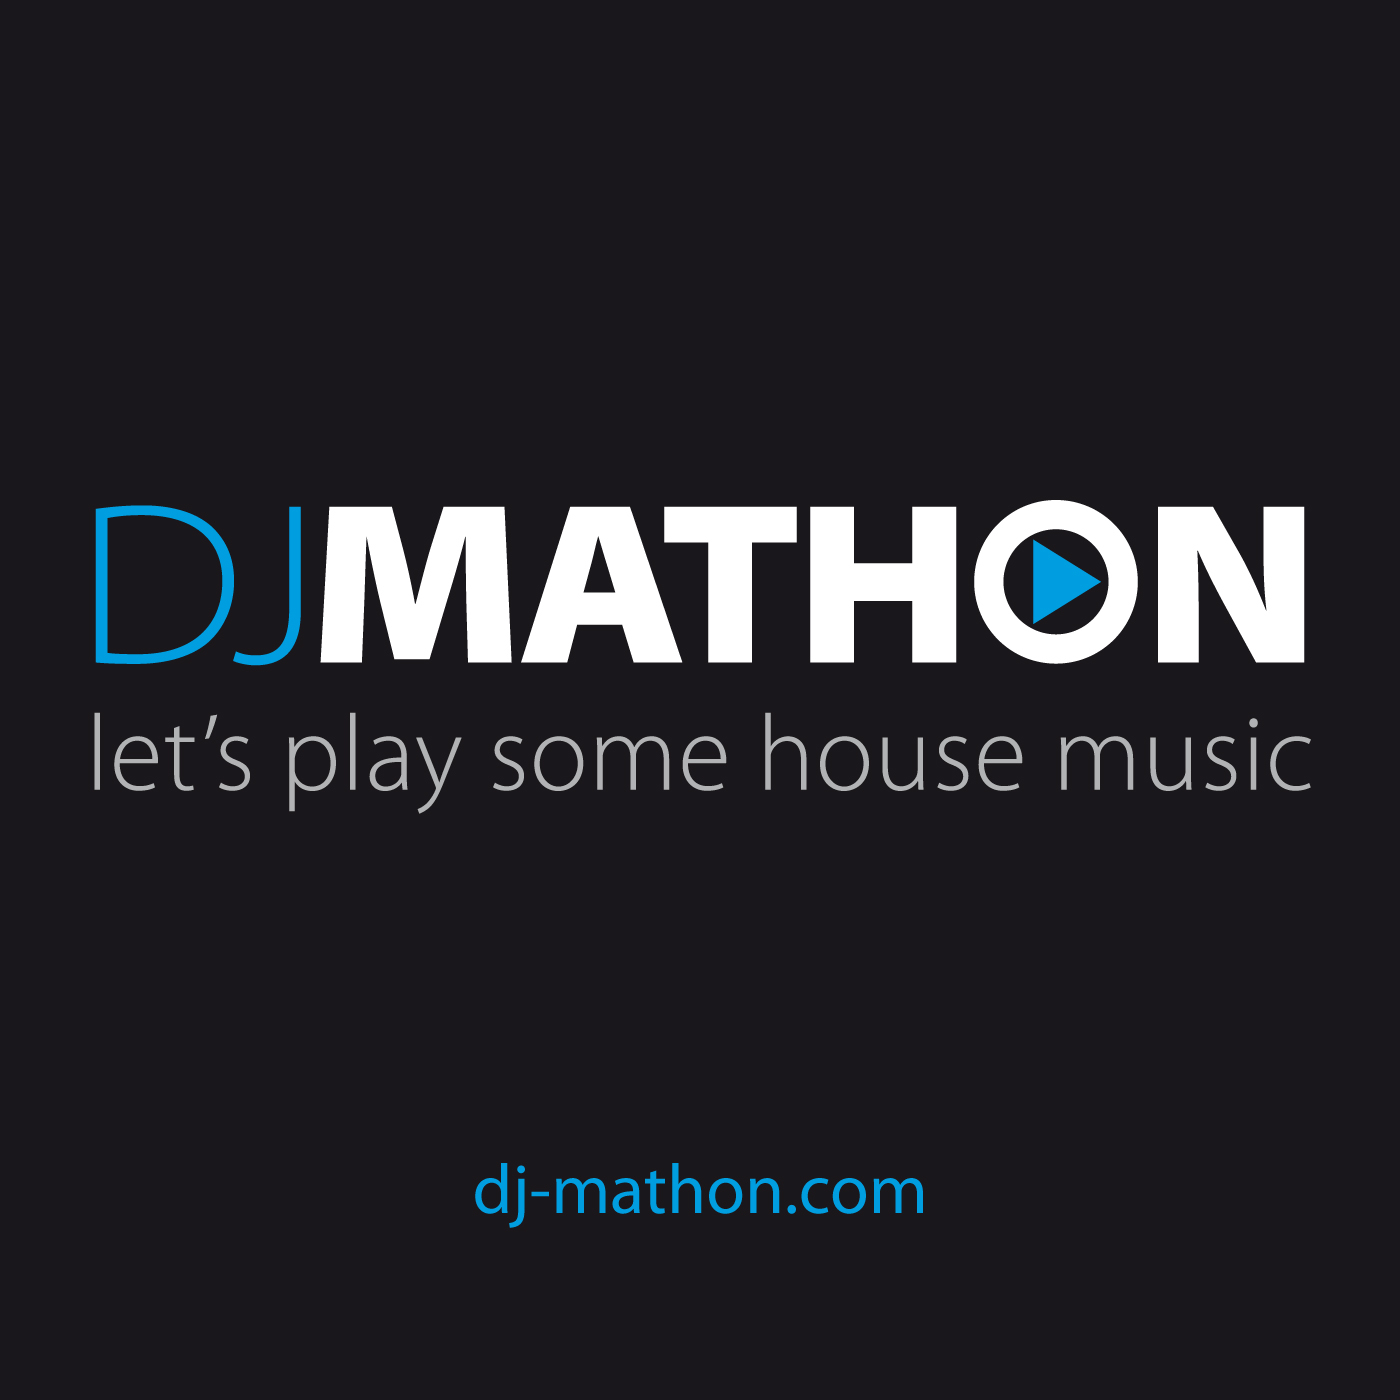 17 DJ MATHON ON THE BEACH